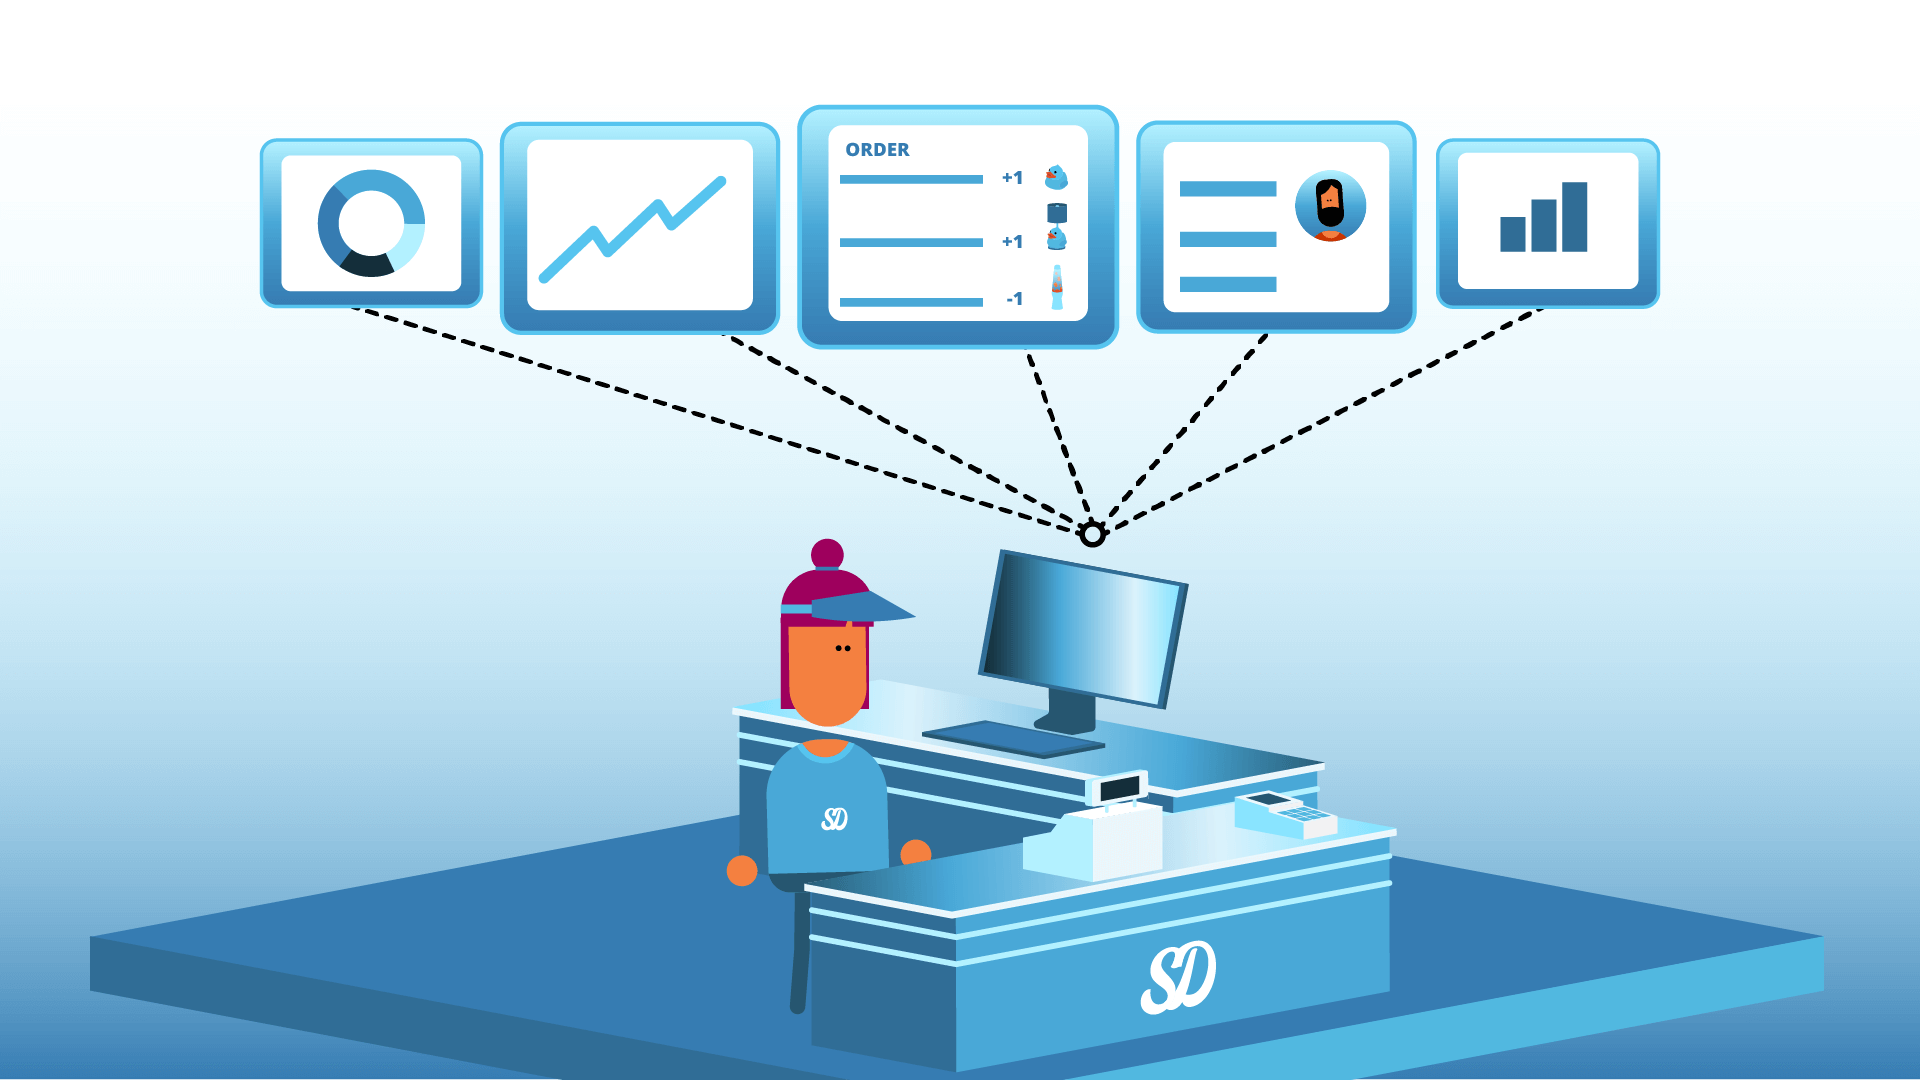 Payment dashboards